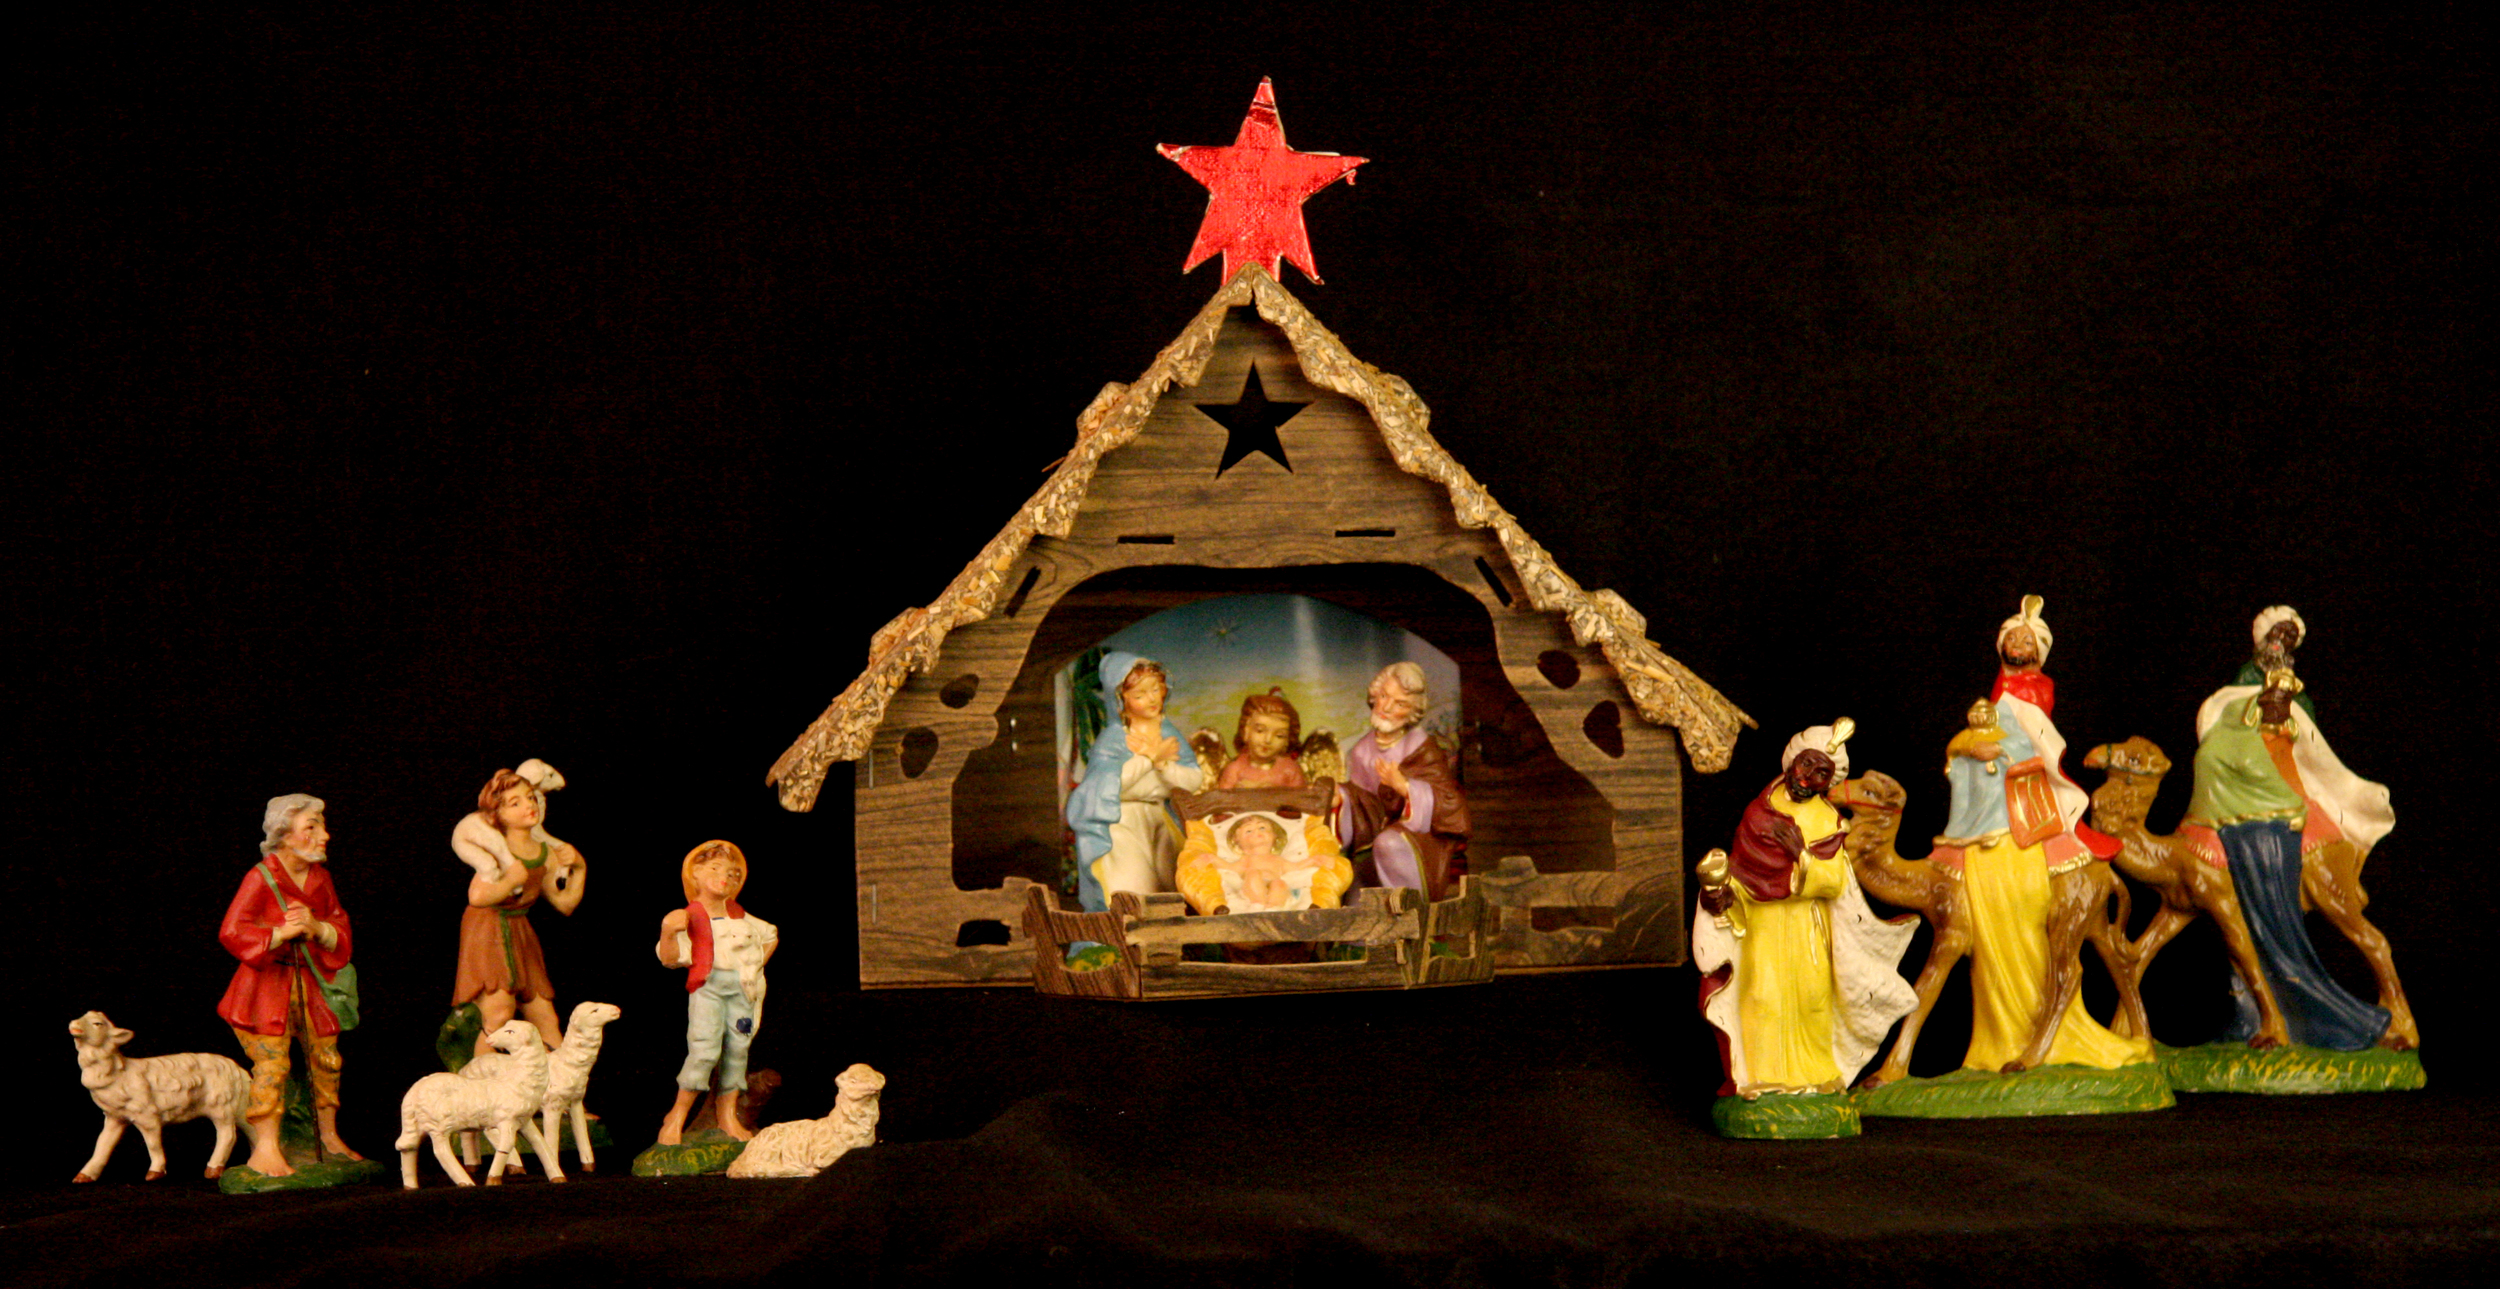 Papier-mache Nativity. Italy (figures), USA (cardboard stable). During the 1950s and 60s, many American families purchased inexpensive Nativity sets like this one at five-and-dime stores like Woolworth's, W.T. Grant, and G.C. Murphy. (Several of the figures in this set have a Murphy's sticker on the base.) Hand painted in Italy, the figures are hollow, with thin papier-mache walls. Most starter sets included the Holy Family, the three wise men, an ox and a donkey, but many different kinds of figures could be bought individually. Nativity sets owned by families were often assembled over a period of years, resulting in figures of different sizes, materials, and countries of origin. Collection of Glencairn Museum.